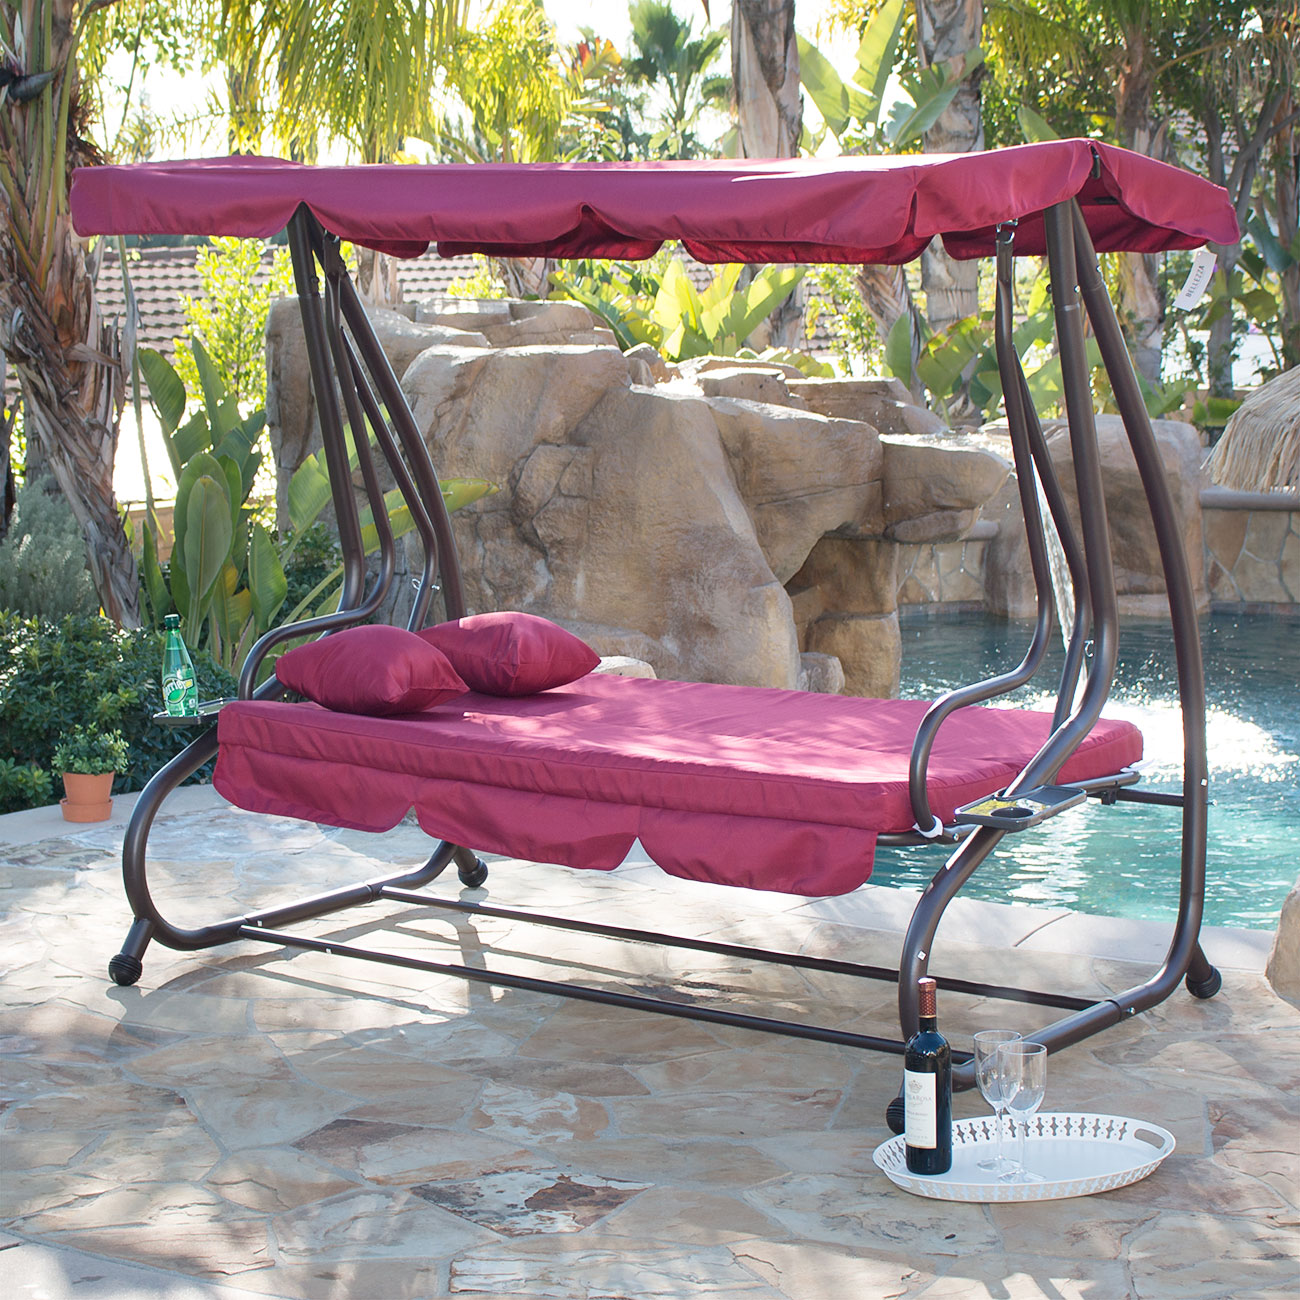 Outdoor Chair With Canopy Outdoor Swing Bed Patio Adjustable Canopy Deck Porch